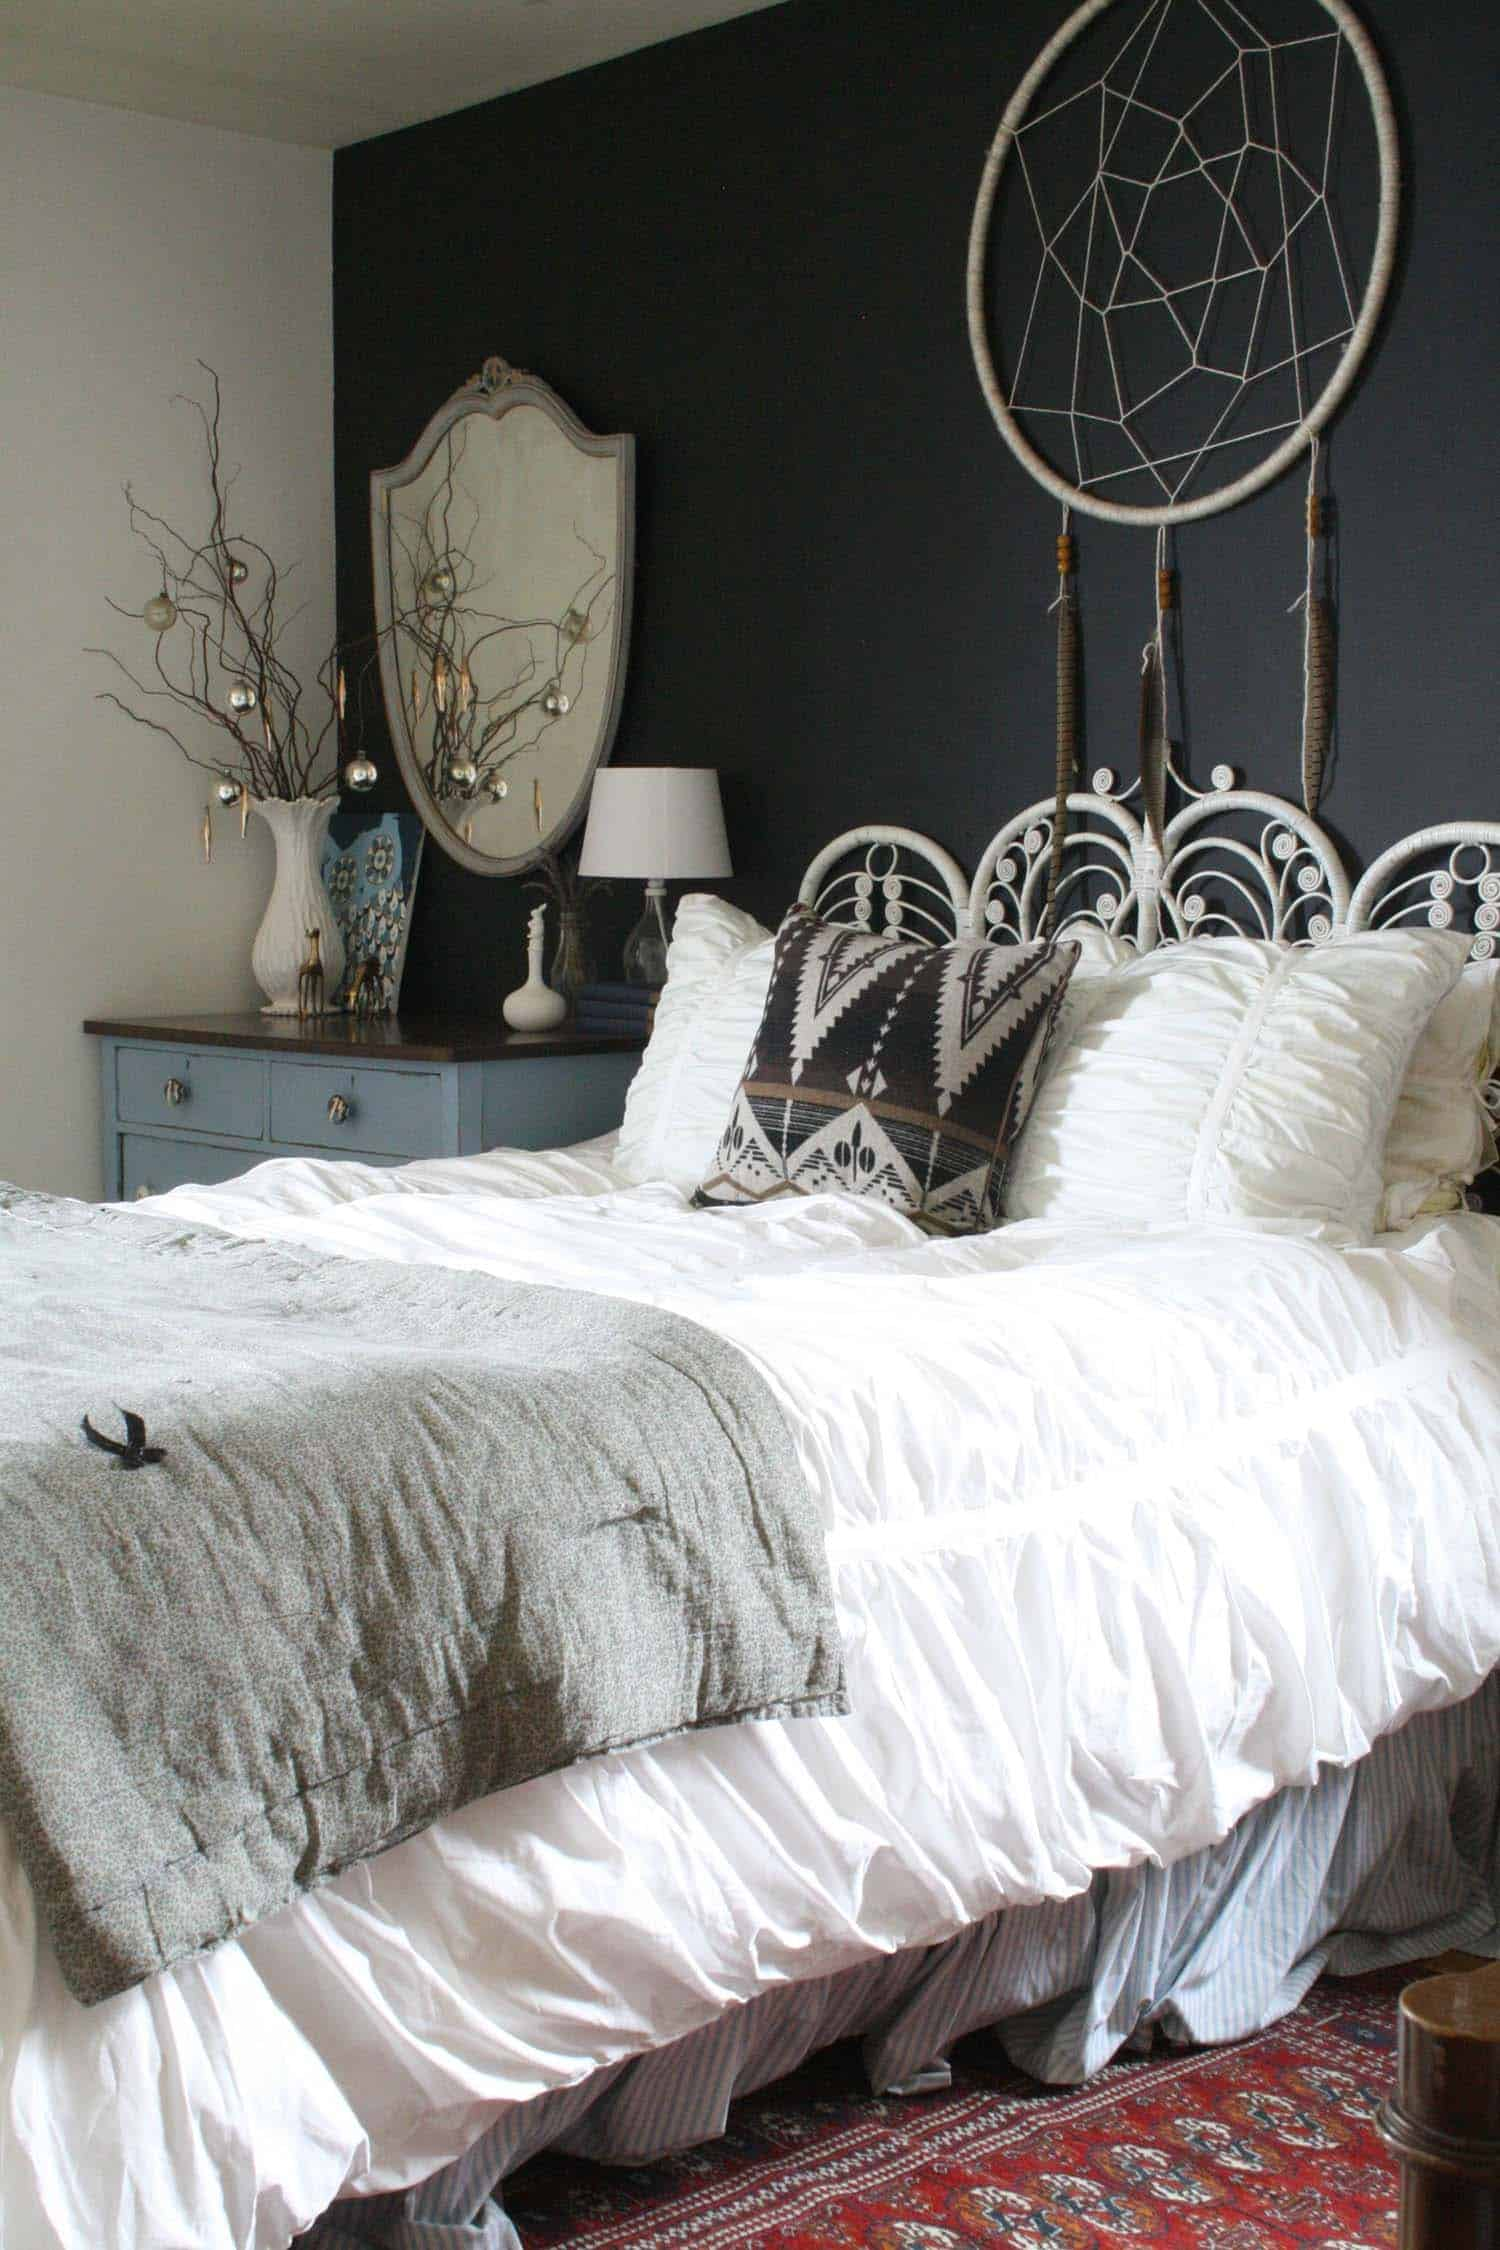 Christmas Bedroom Decorating Ideas-18-1 Kindesign